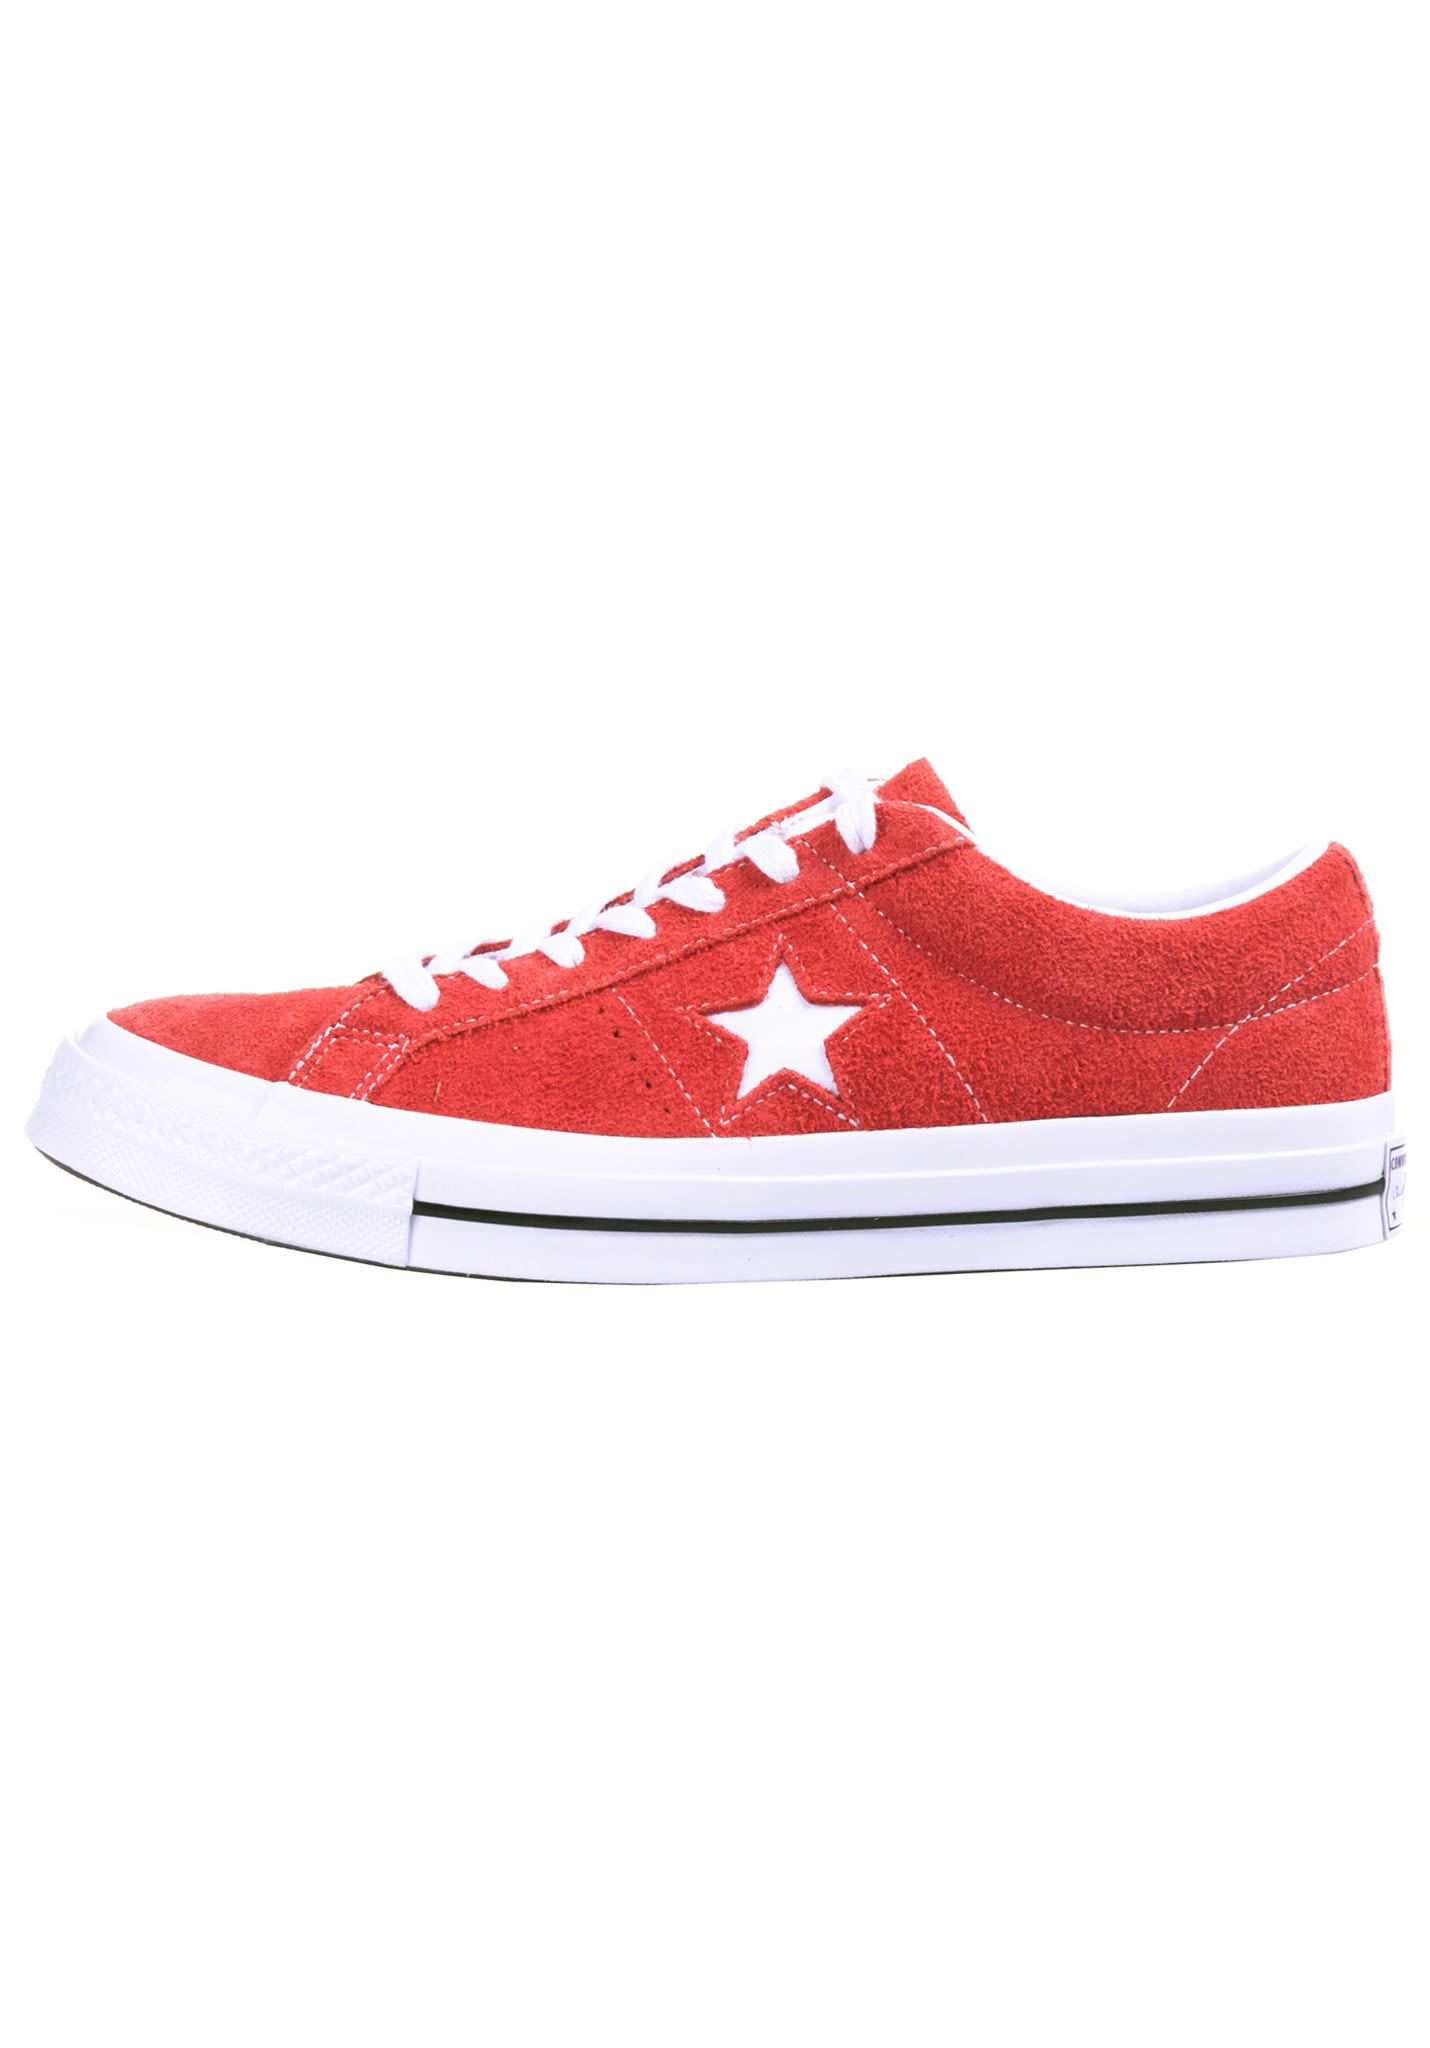 c82abdab70d Converse One Star OX - Sneakers voor Heren - Rood - Planet Sports